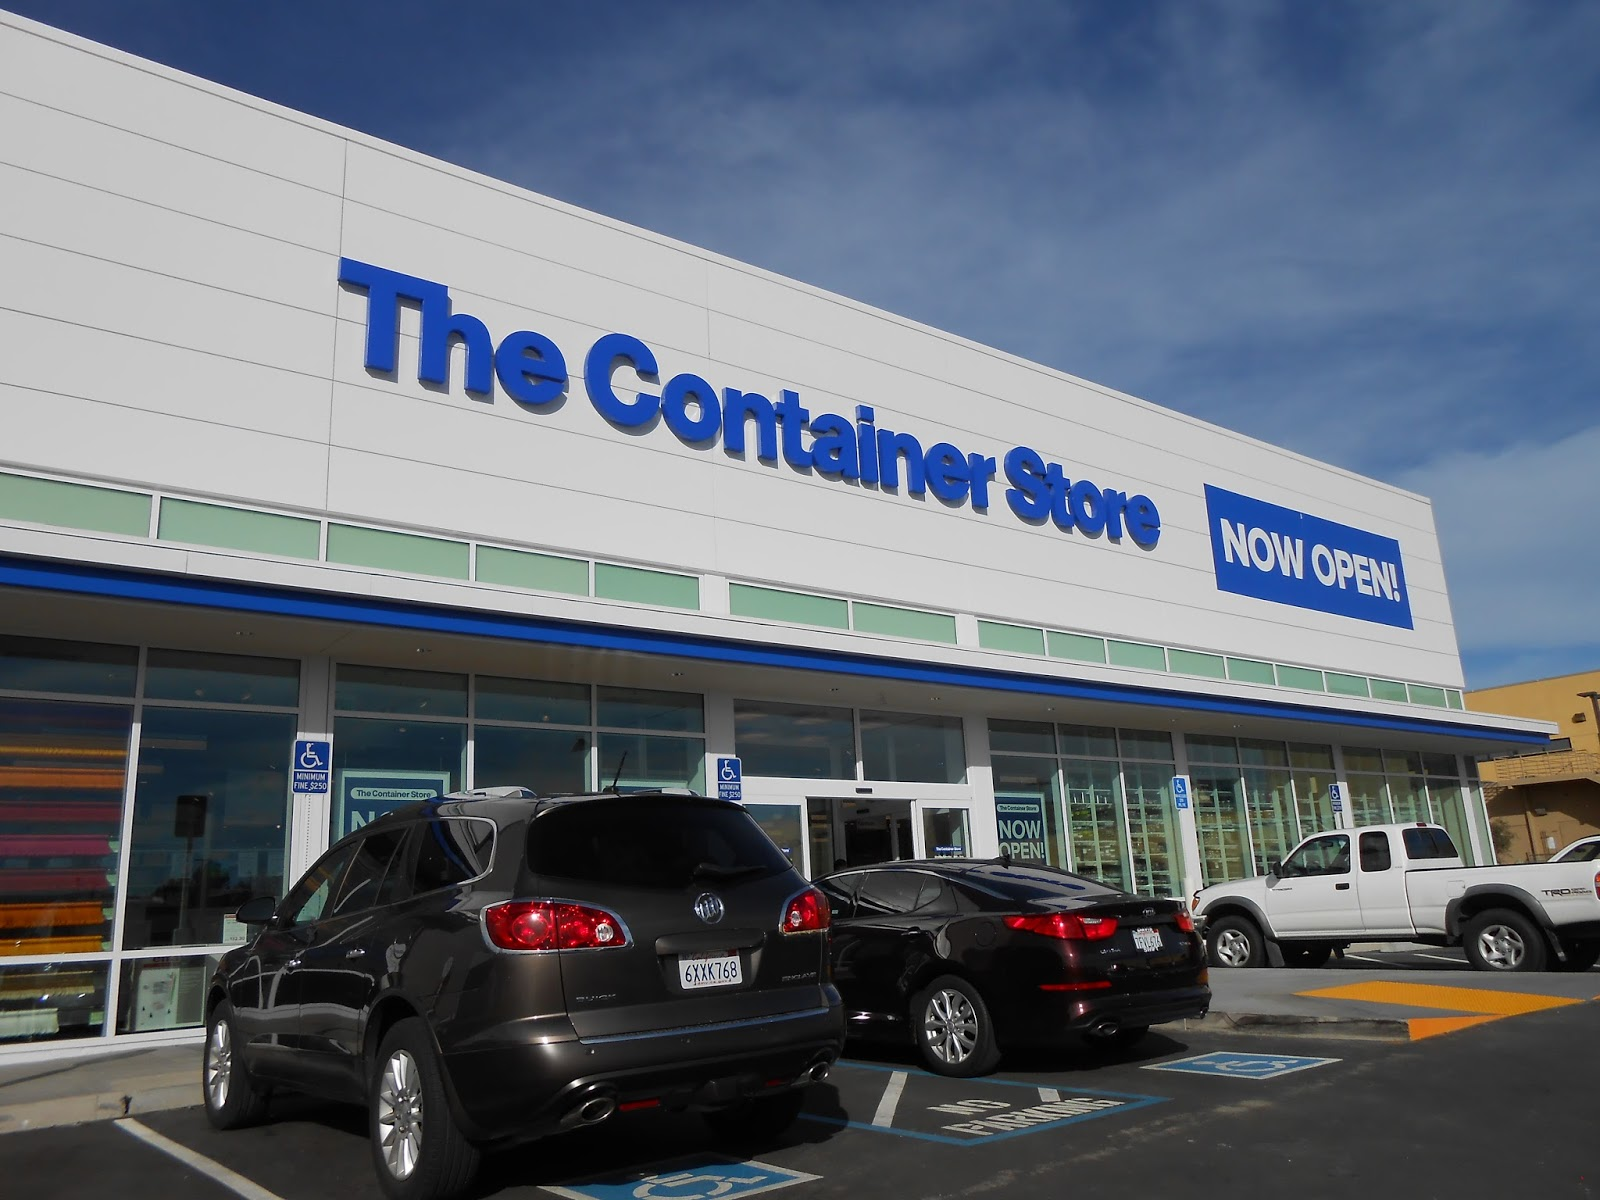 The Container Store insiders said they plan to begin selling shares